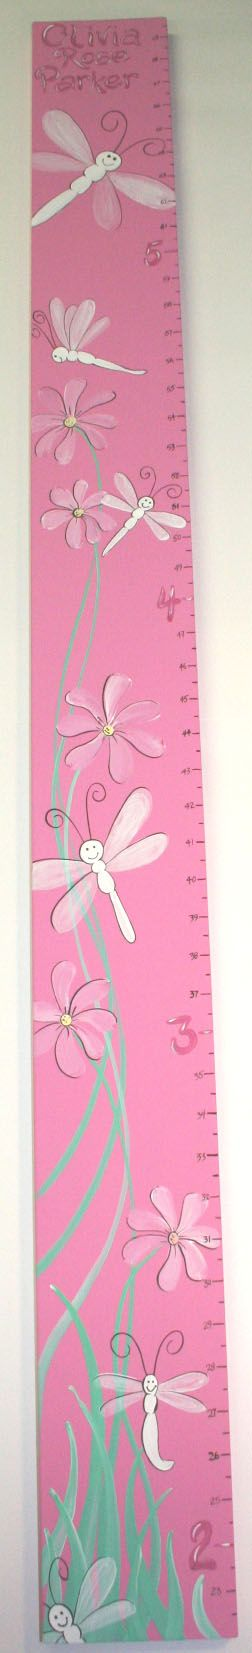 dragonfly growth chart